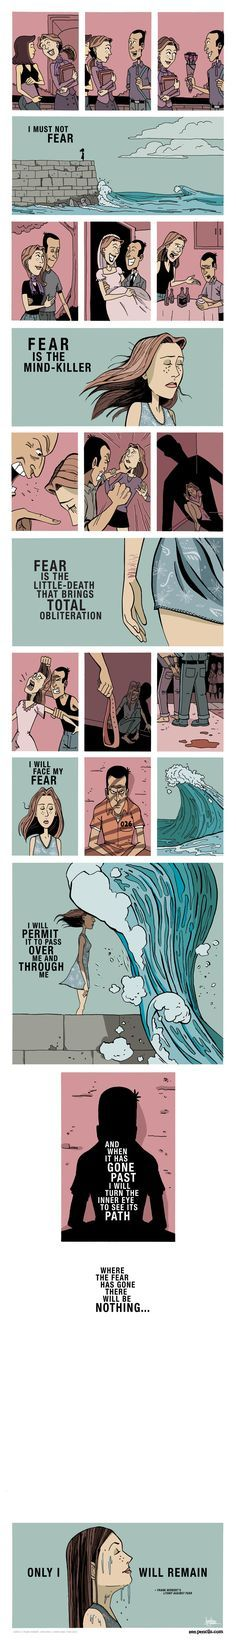 A comic from Zen pencils. Based on Frank Herbert's incredible 'Litany Against Fear' from the Dune series. The Litany is an incantation used by the Bene Gesserit, a sisterhood of powerful women. Love this!